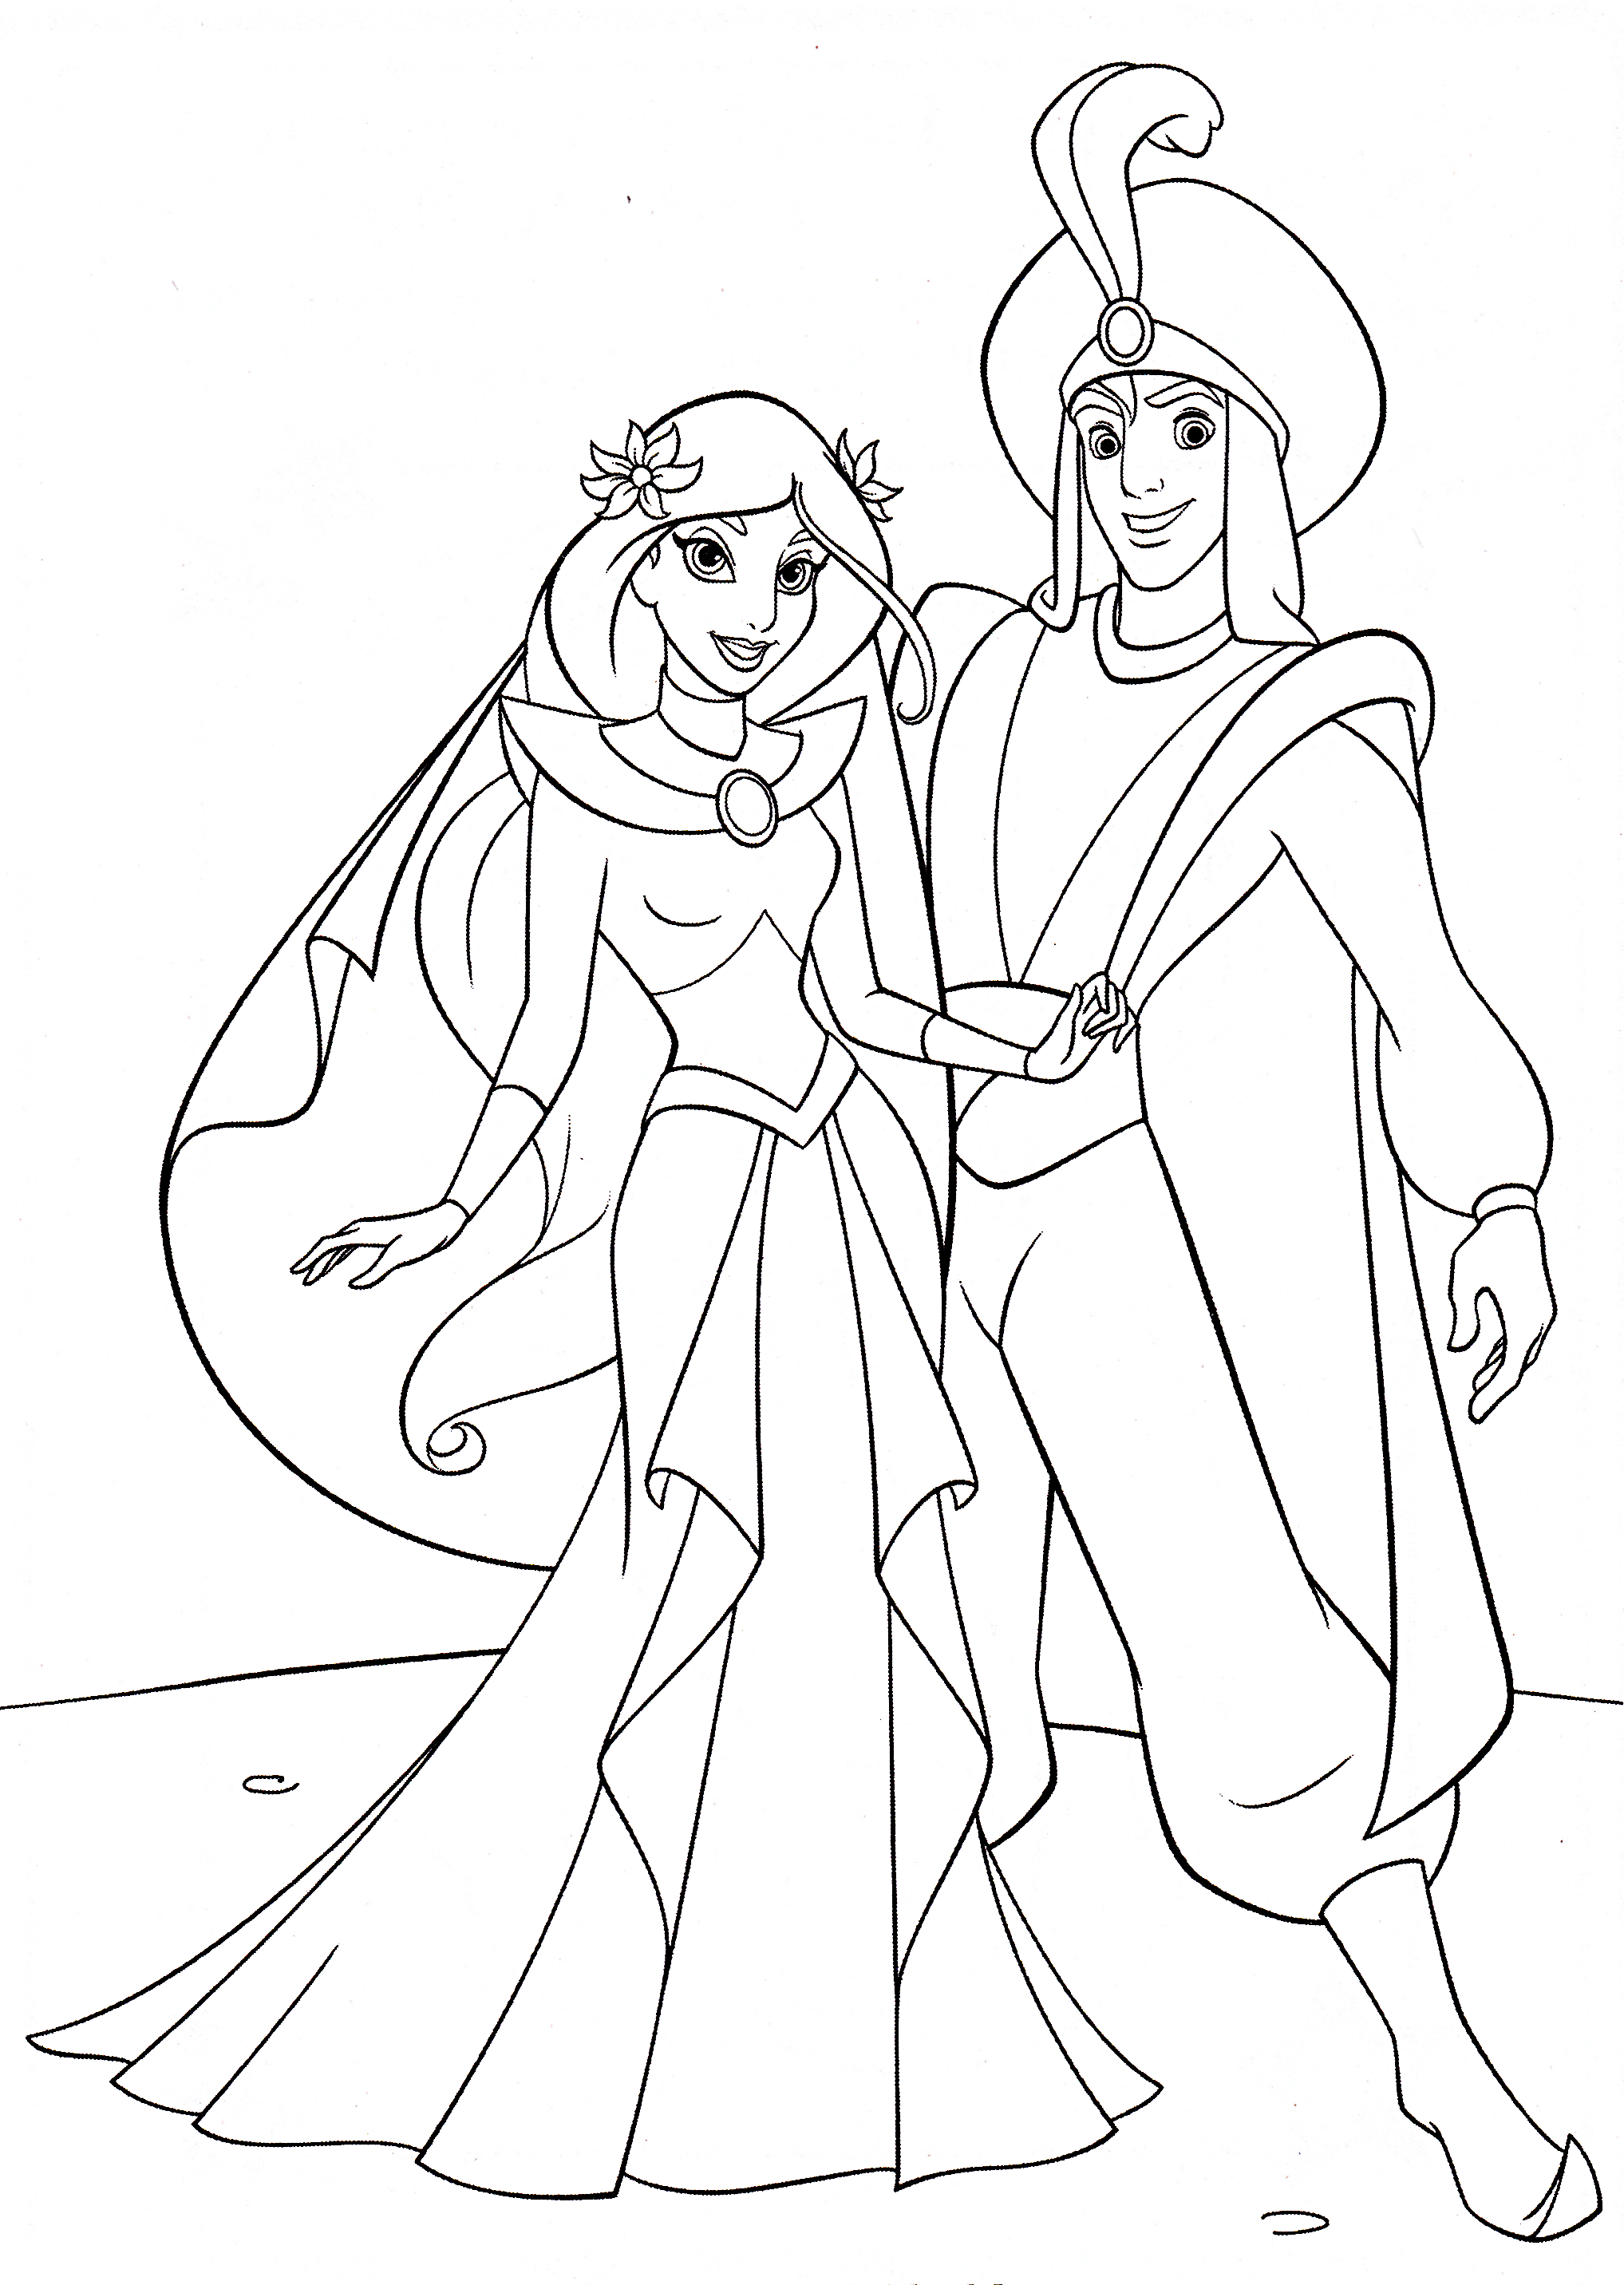 prince and princess coloring pages - photo#28